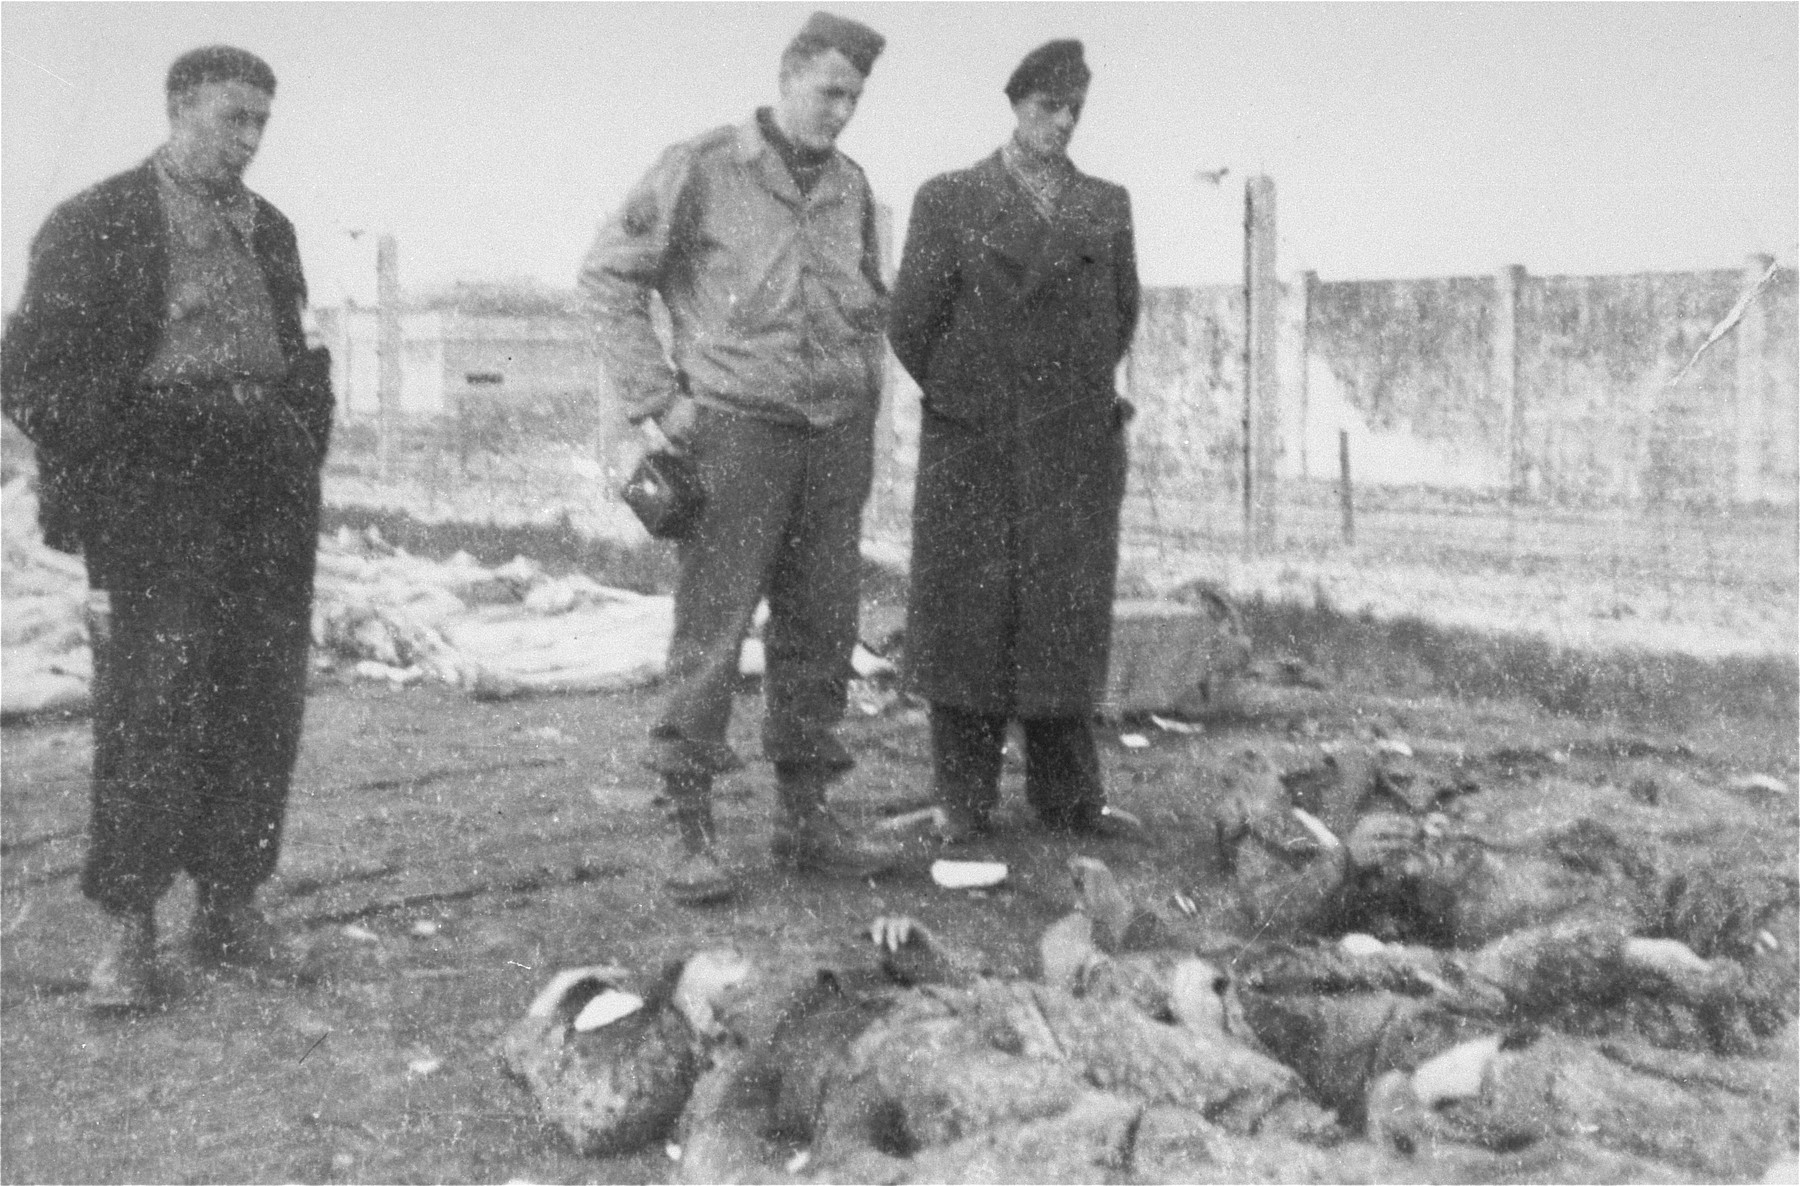 An American soldier and two survivors examine the bodies of SS guards killed by U.S. troops during the liberation of the camp.